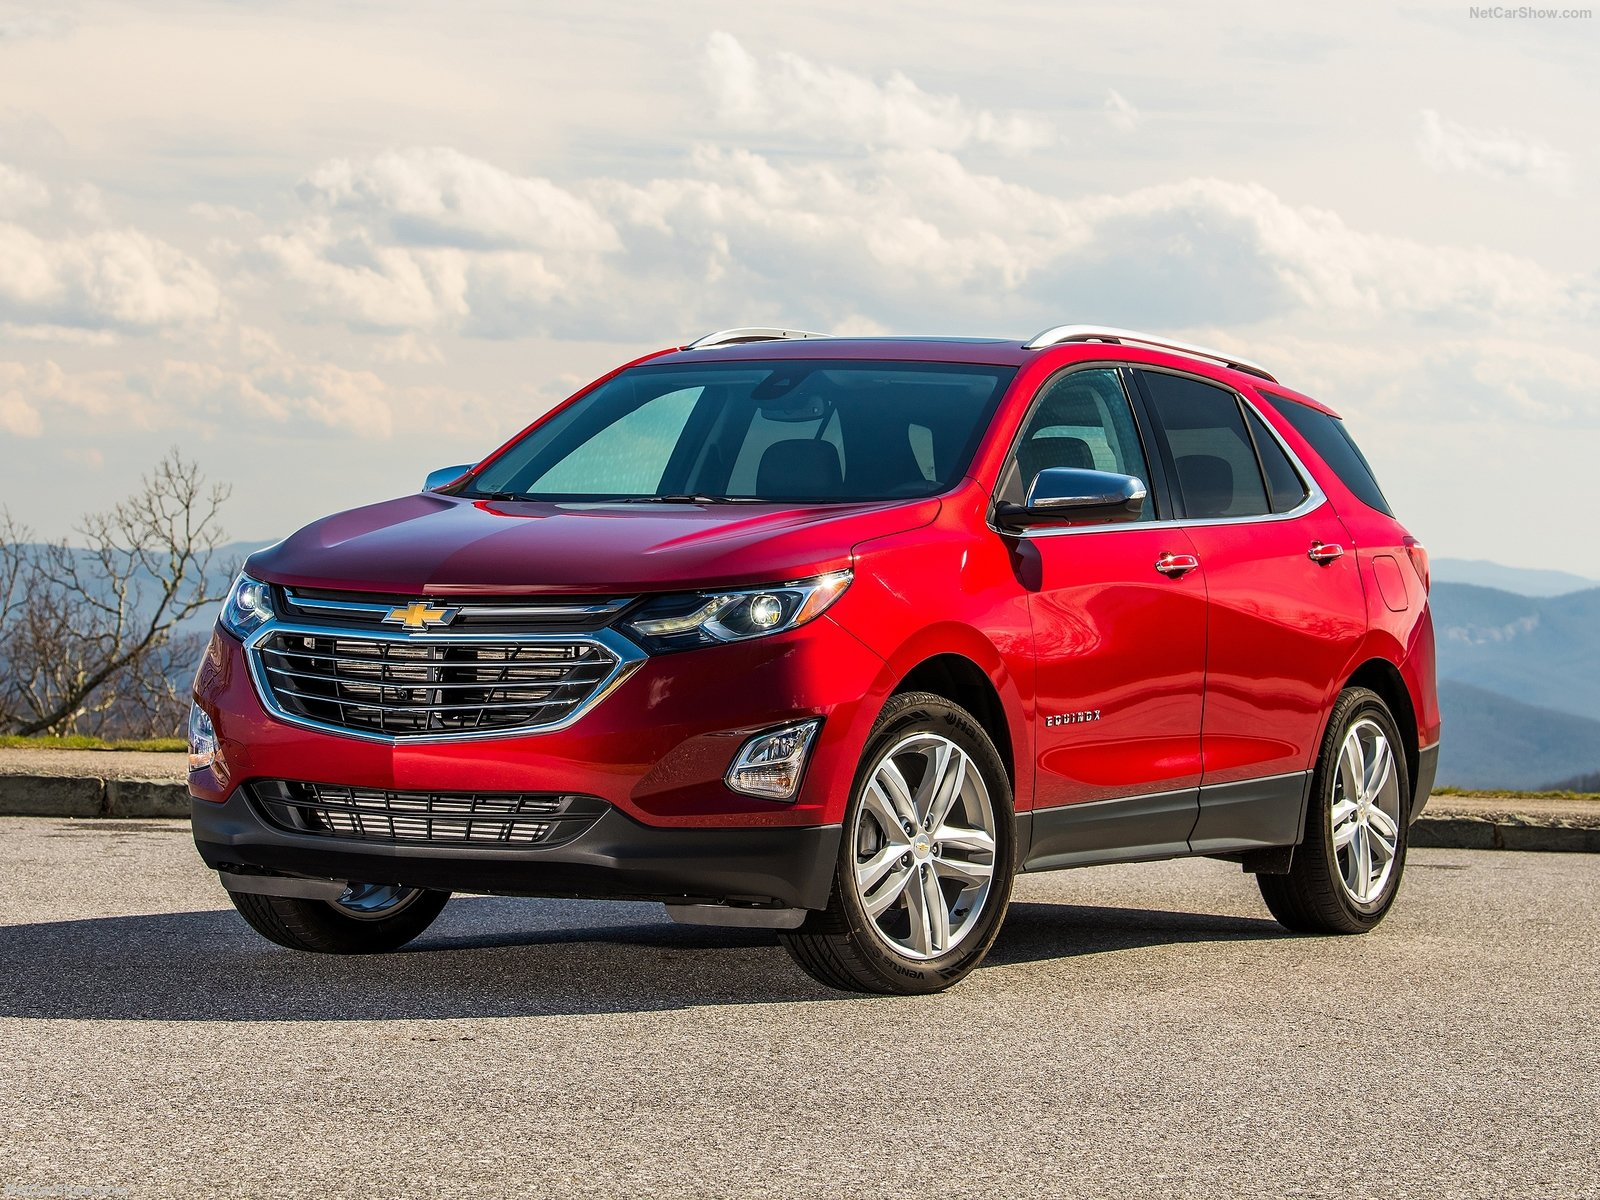 Chevrolet Equinox photo 186169